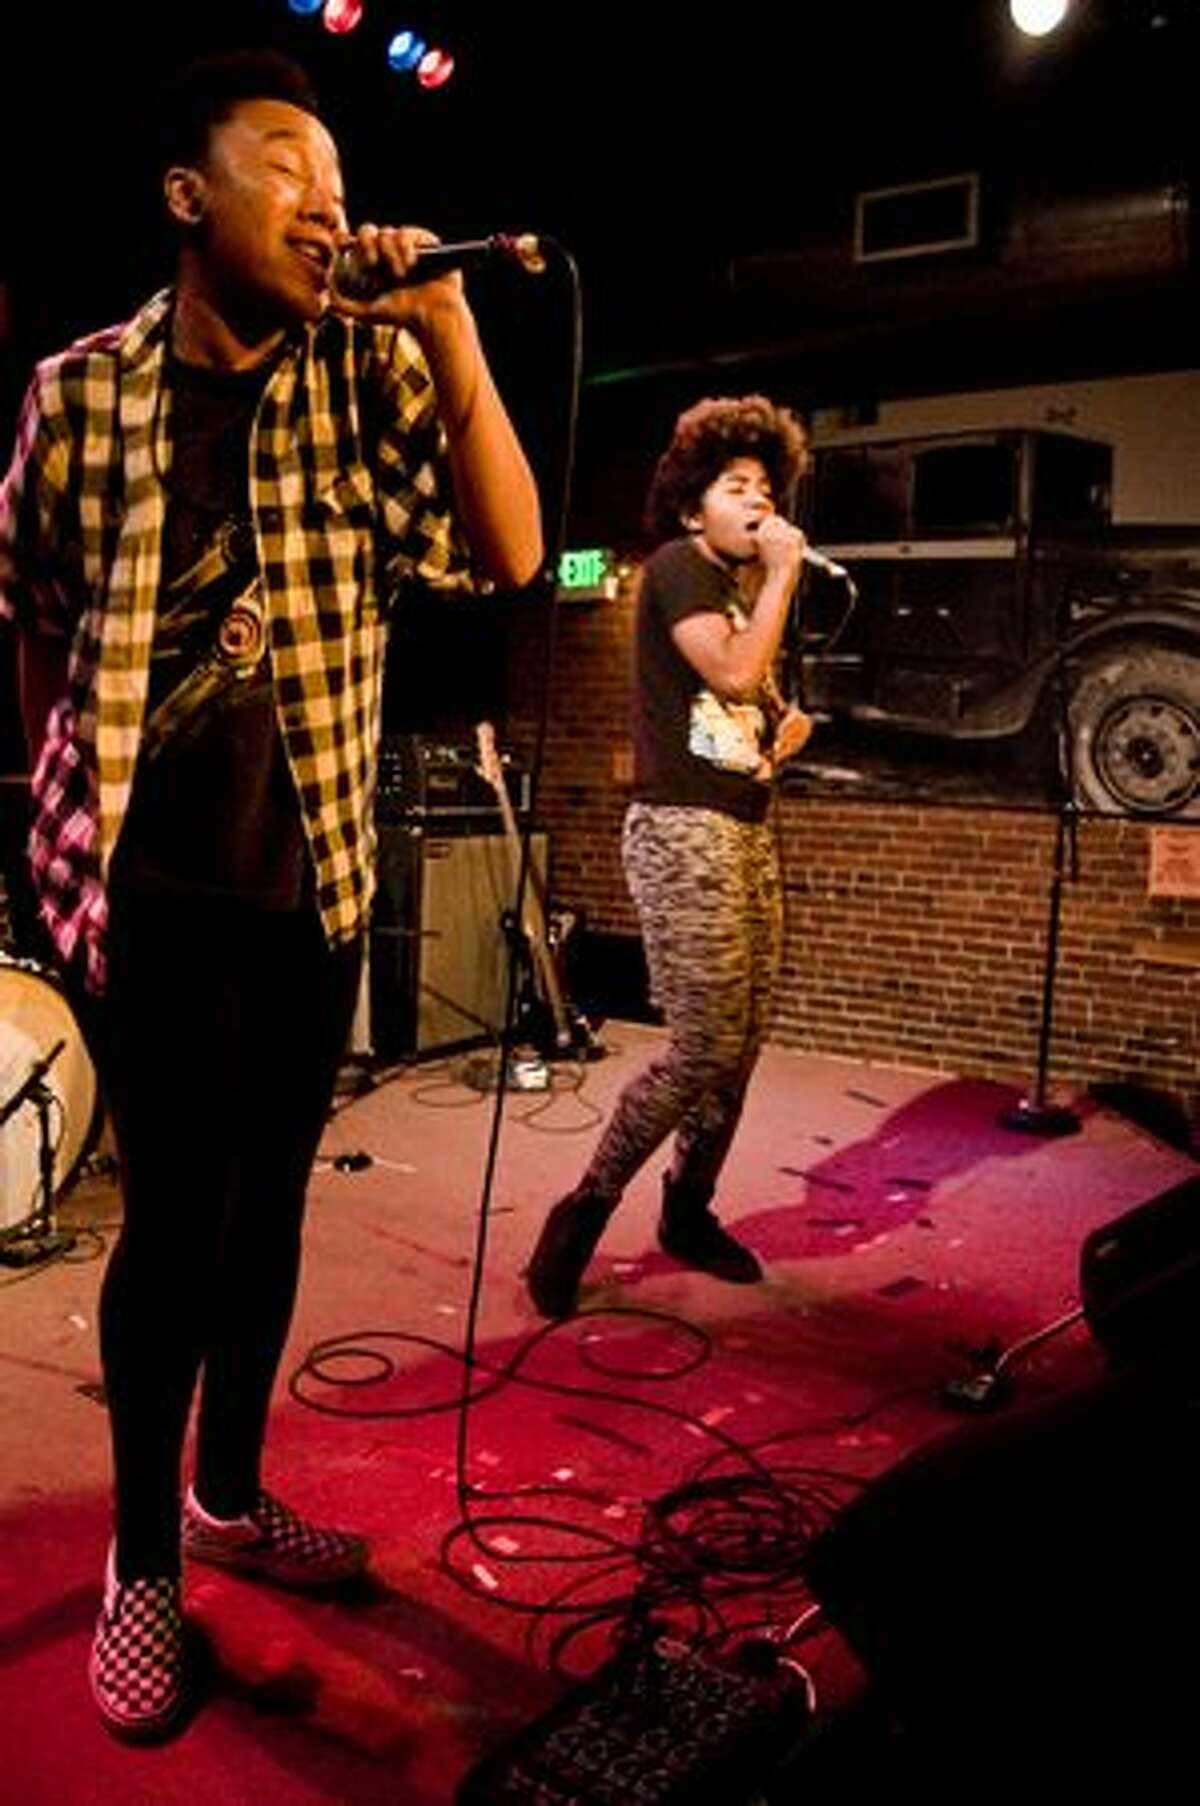 THEESatisfaction perfroming at the SXSW sendoff party at the Tractor. (photo courtesy of Nate Watters)